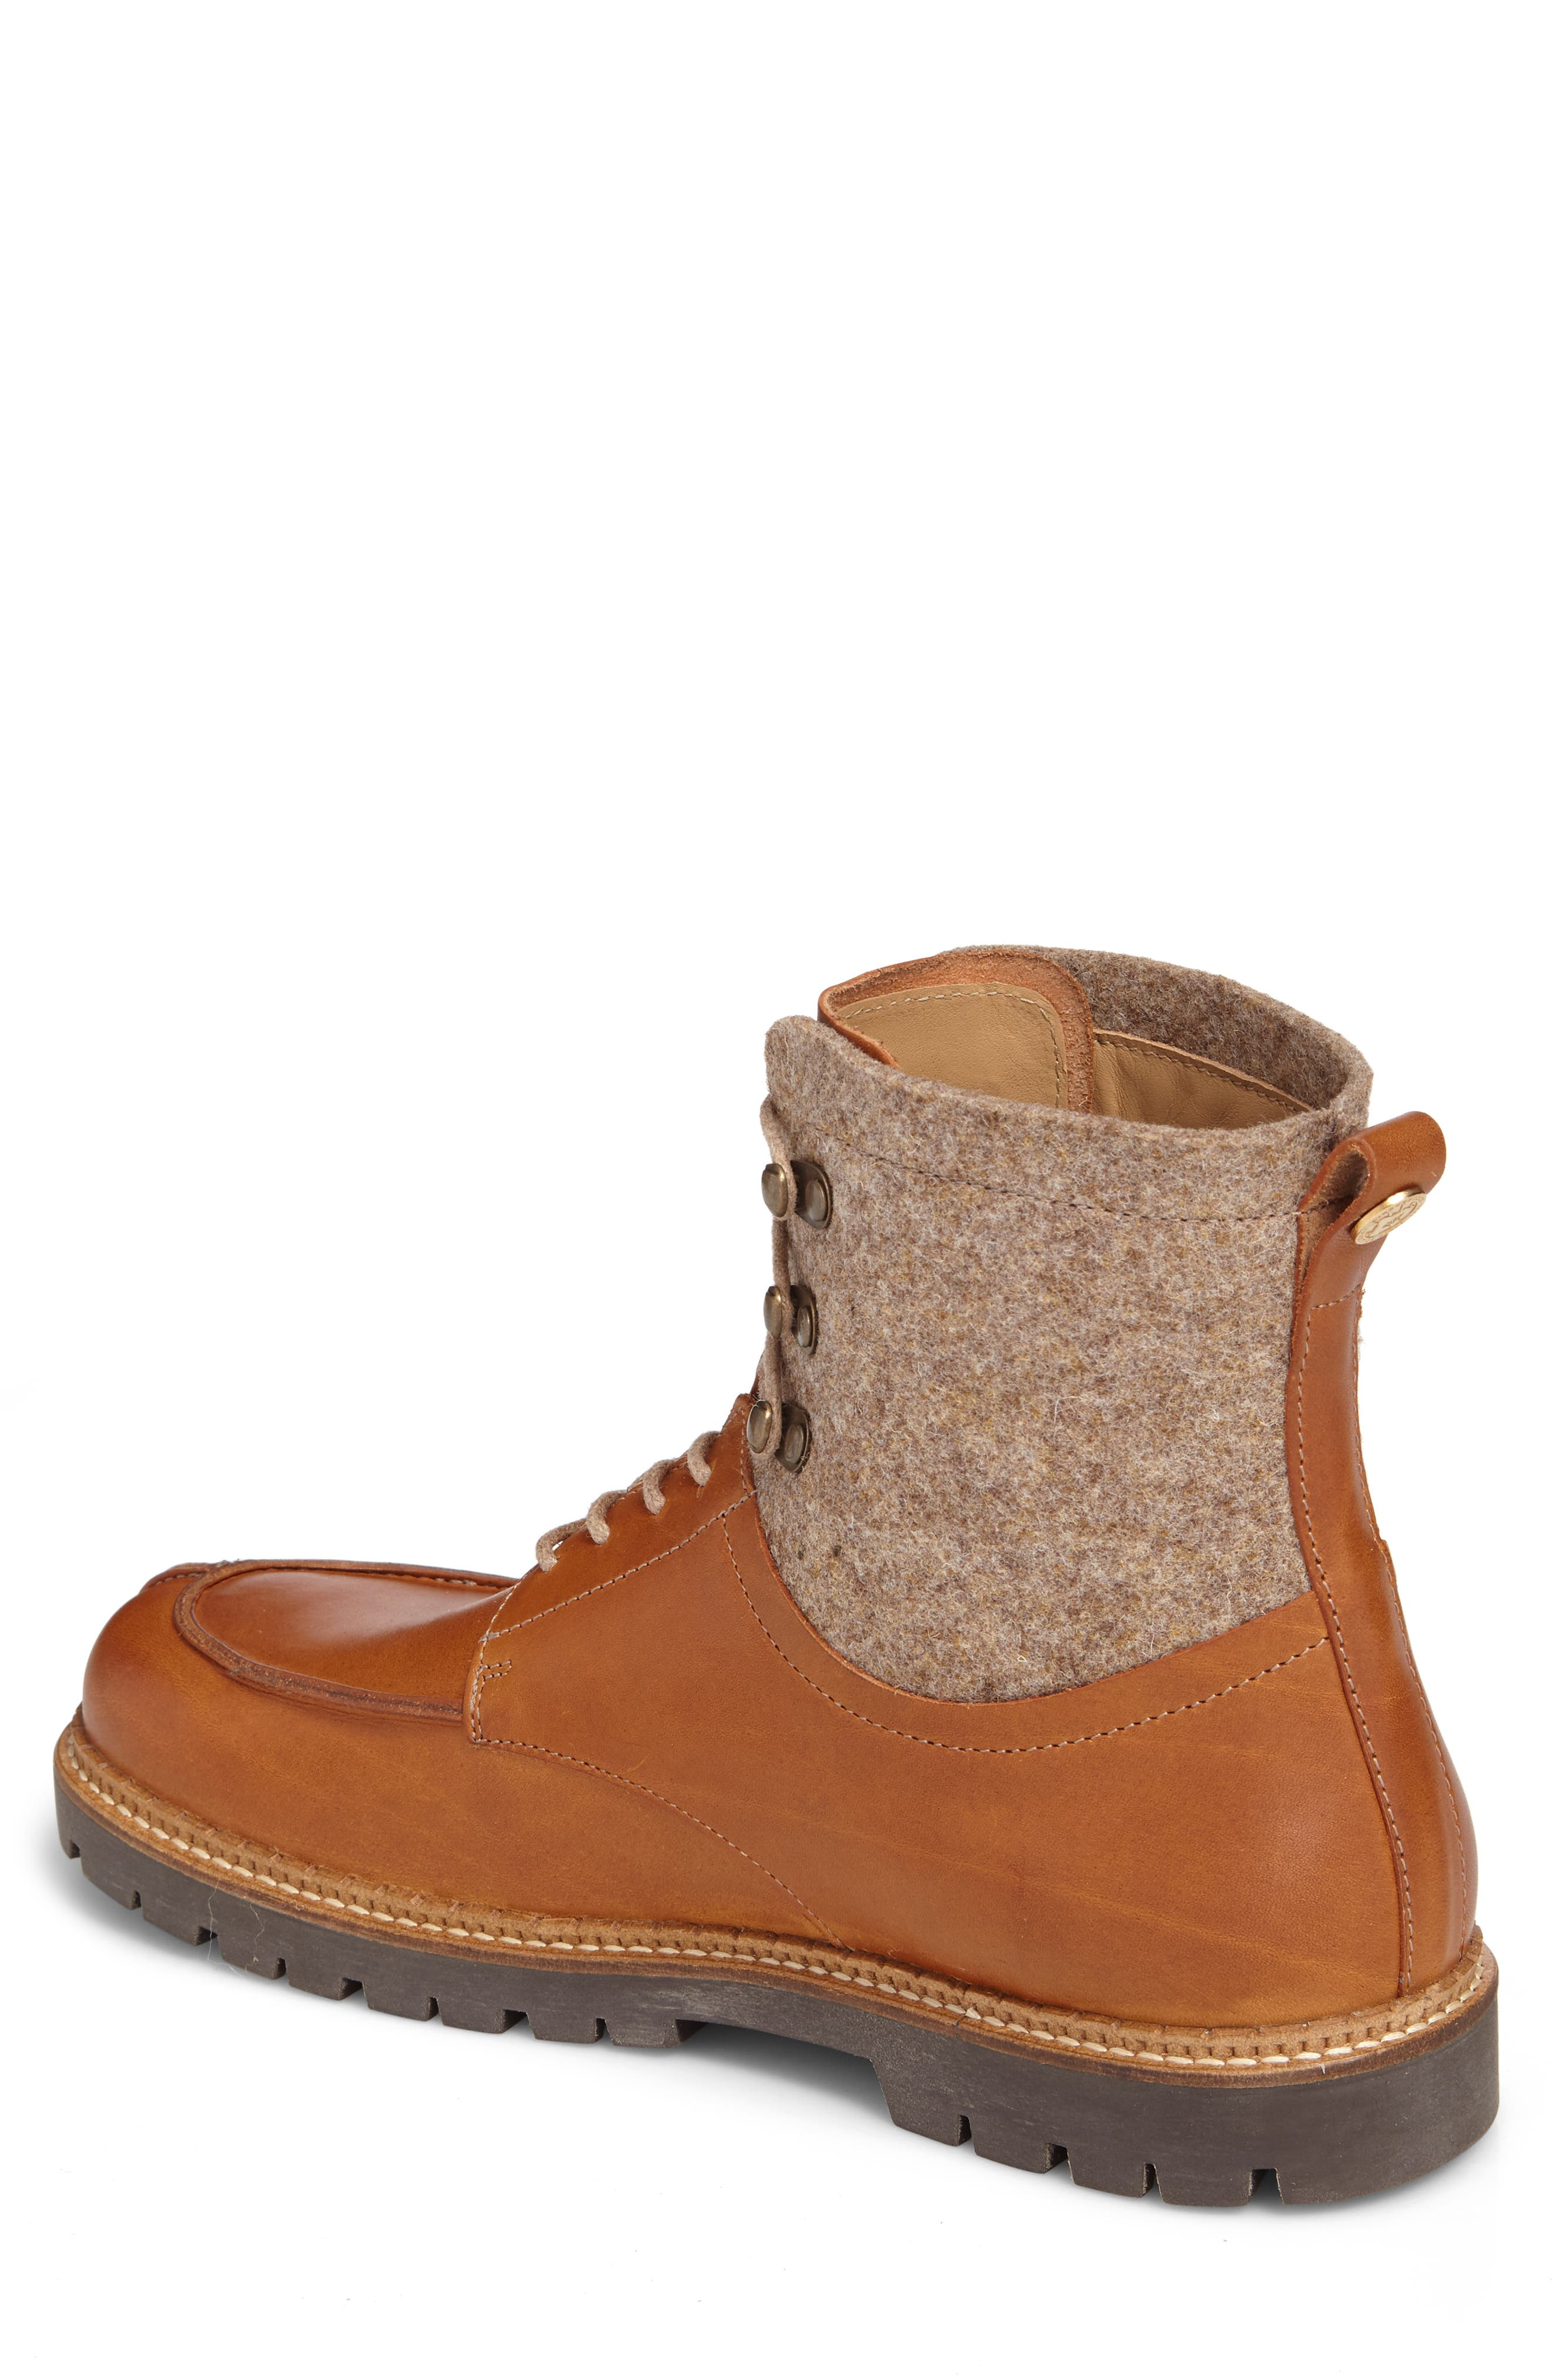 Timmins Split Toe Boot,                             Alternate thumbnail 3, color,                             Cuoio